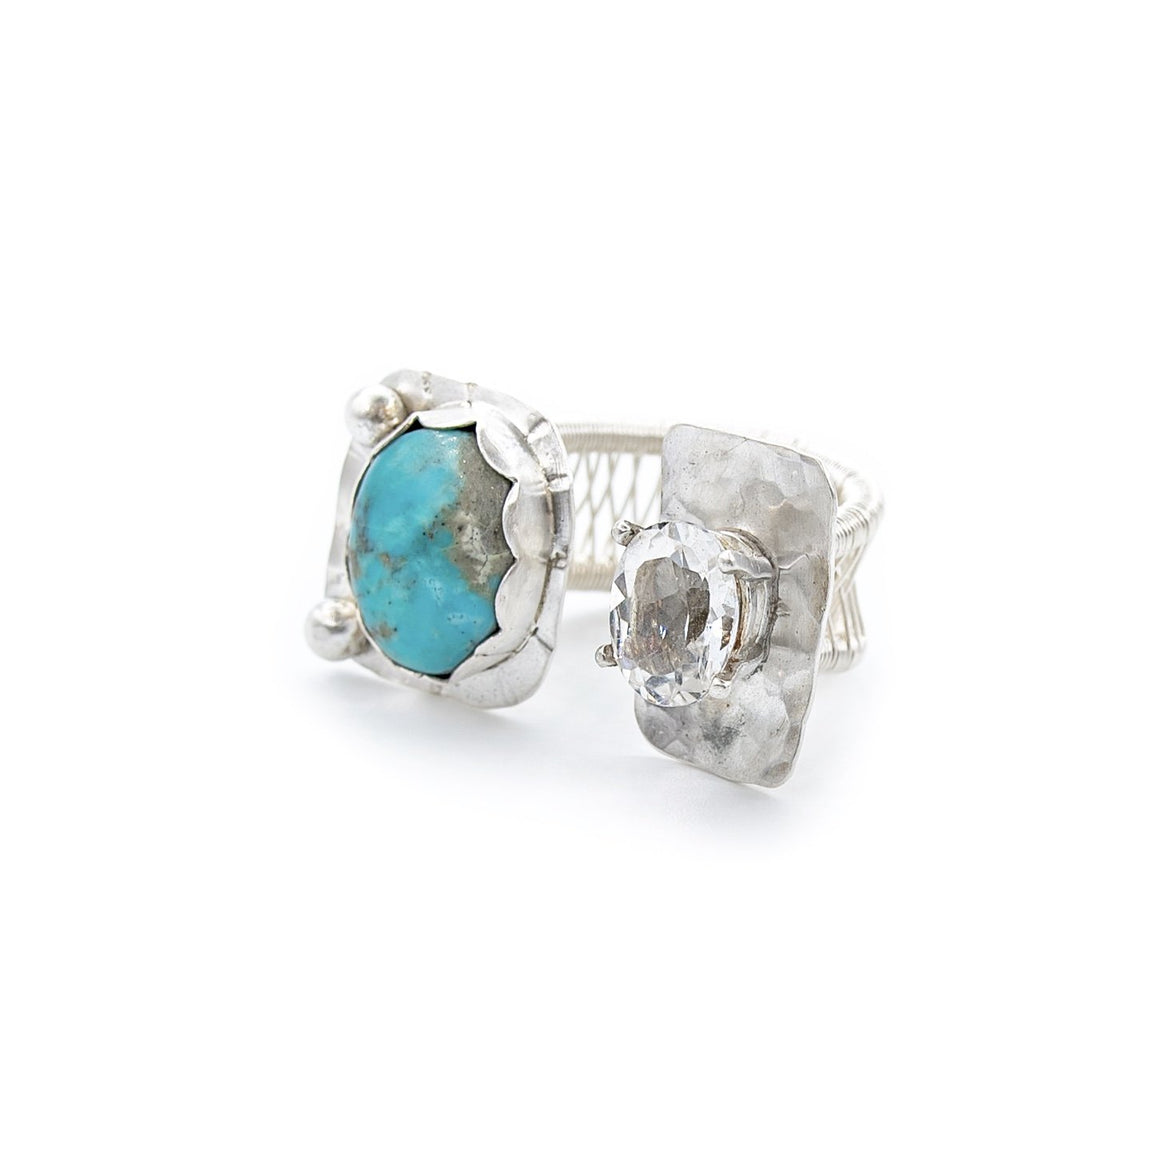 Turquoise and Topaz Ring by Original Sin Jewelry